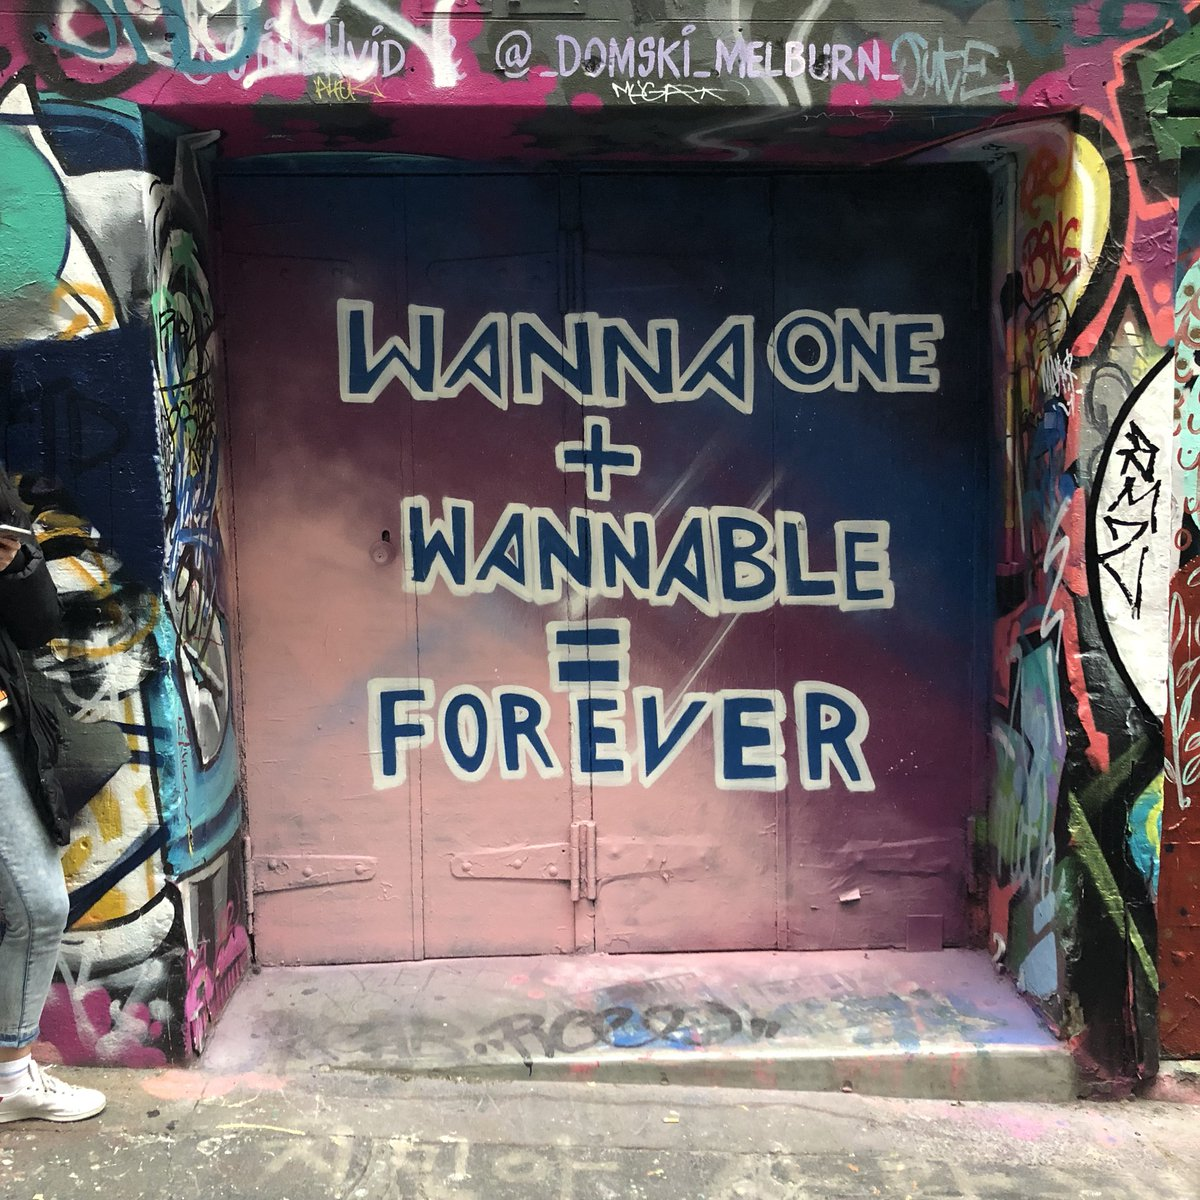 GUYS LOOK AT THE GRAFFITI IN MELBOURNE  #WannaOneInMelbourne #워너원<br>http://pic.twitter.com/7c6hkdxwzi